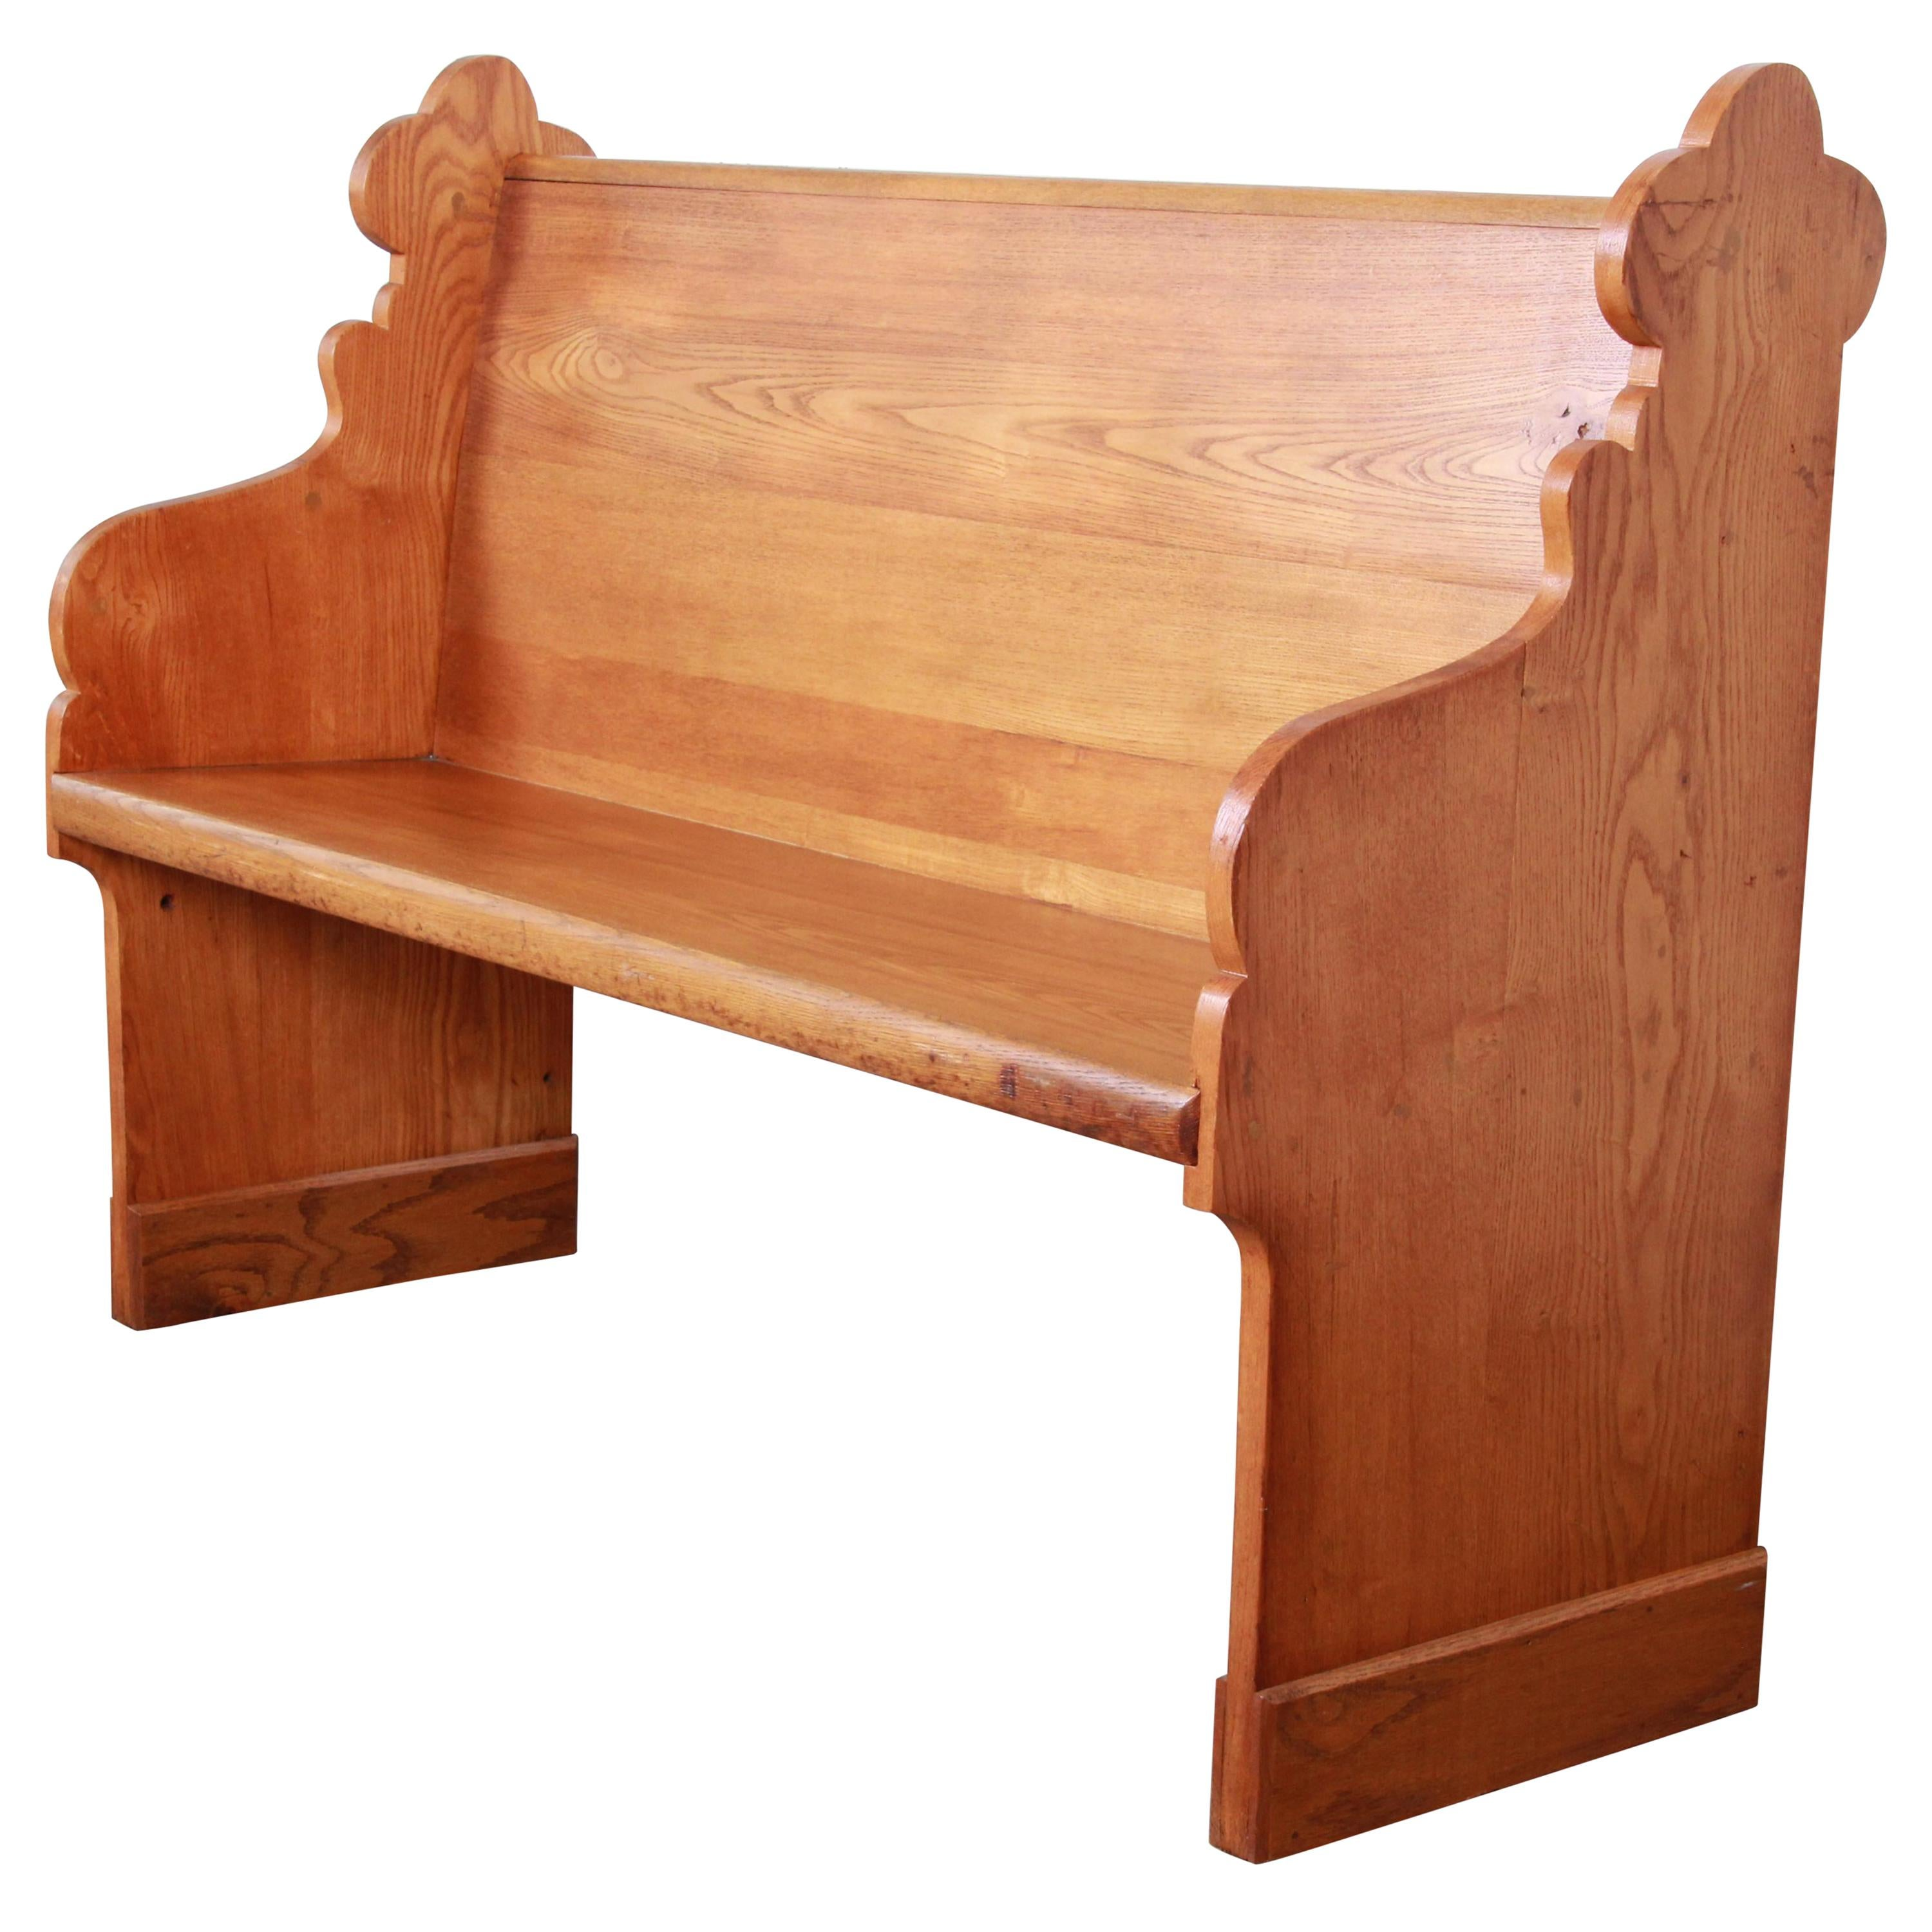 Astounding Victorian Pine Kitchen Bench Or Church Pew At 1Stdibs Dailytribune Chair Design For Home Dailytribuneorg